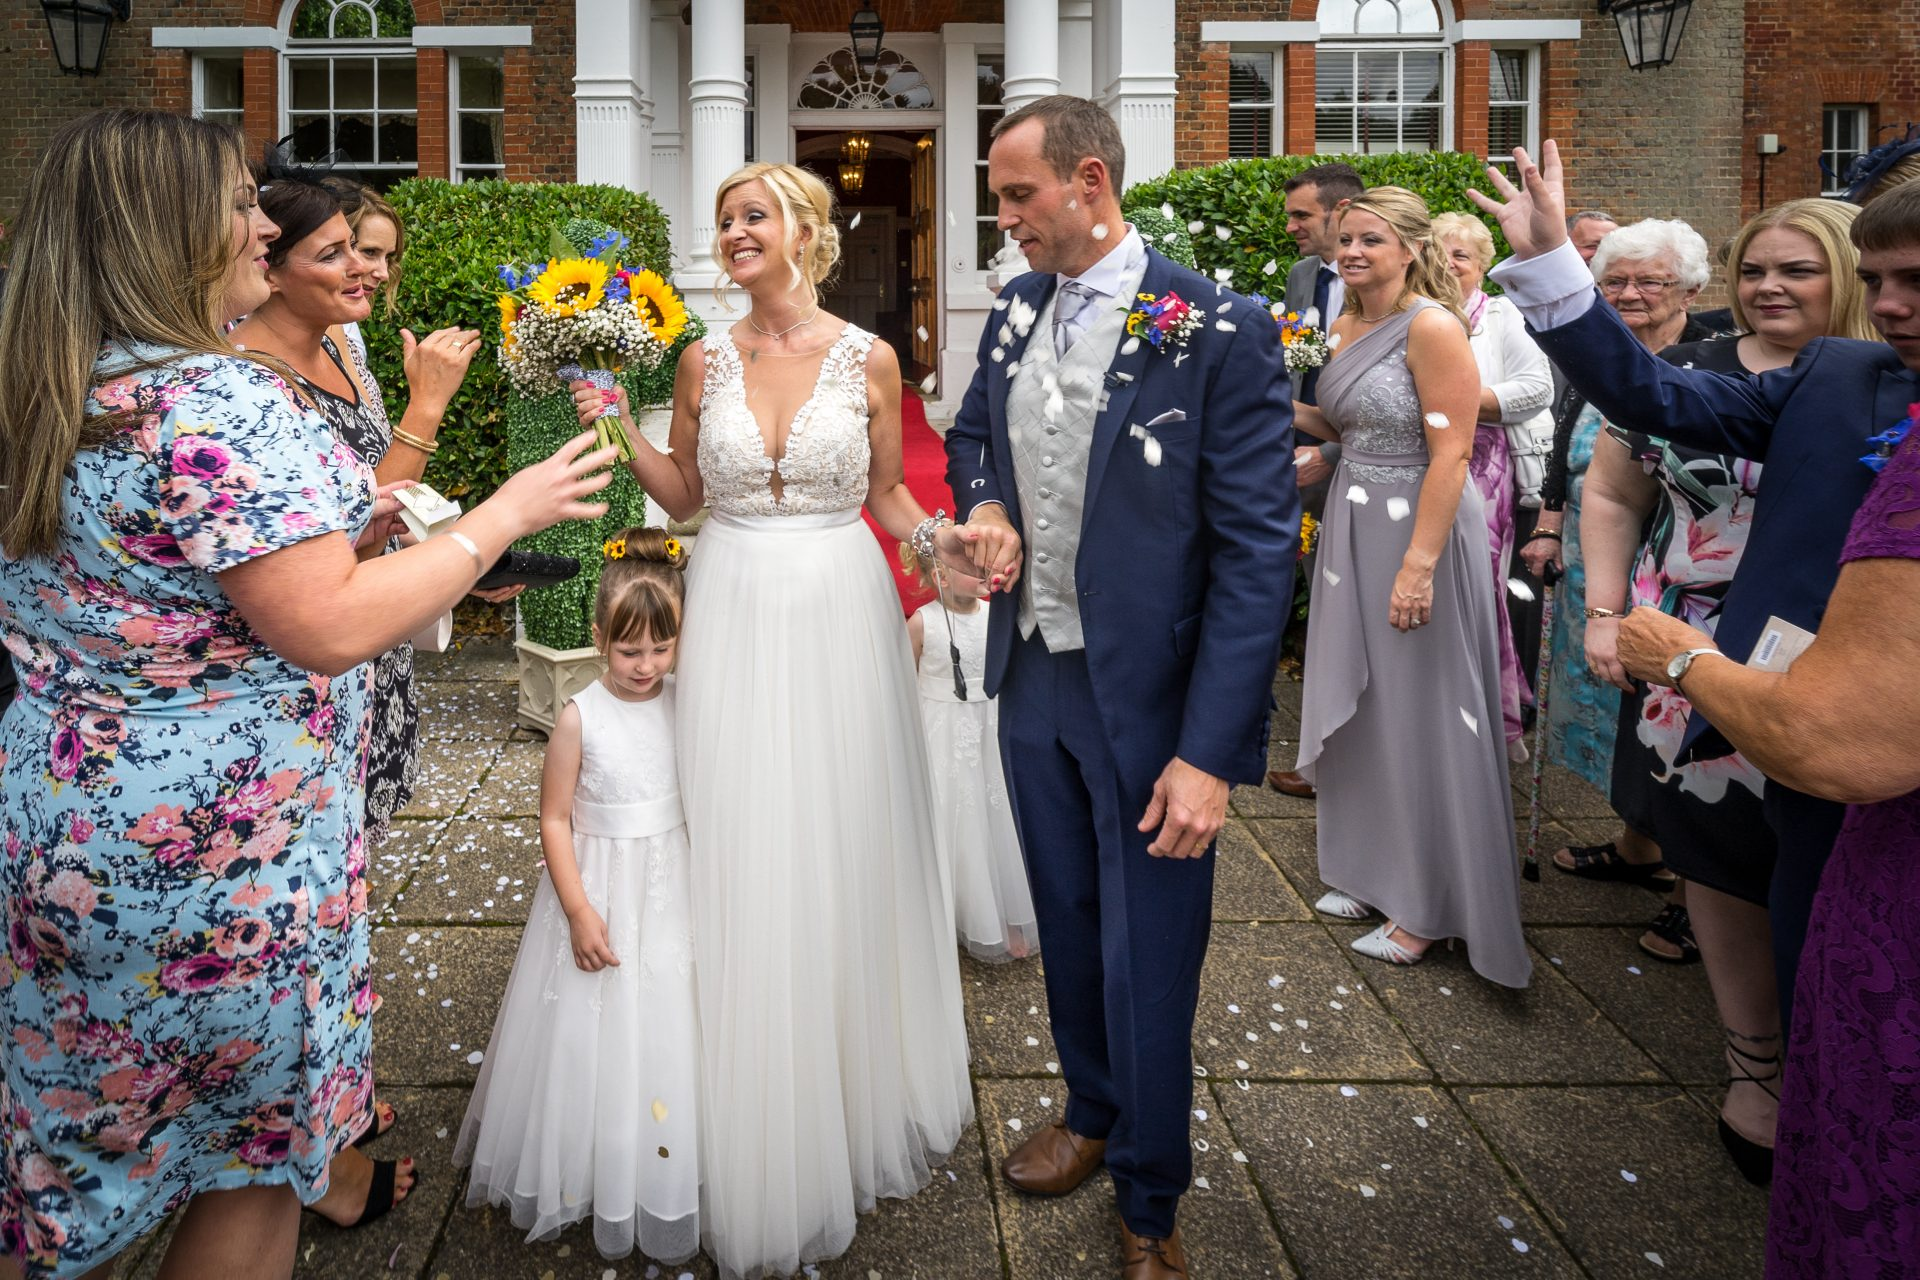 YFFUK Phil Endicott Murray Best Western Moore Place Hotel Aspley Guise bride and groom covered in confetti